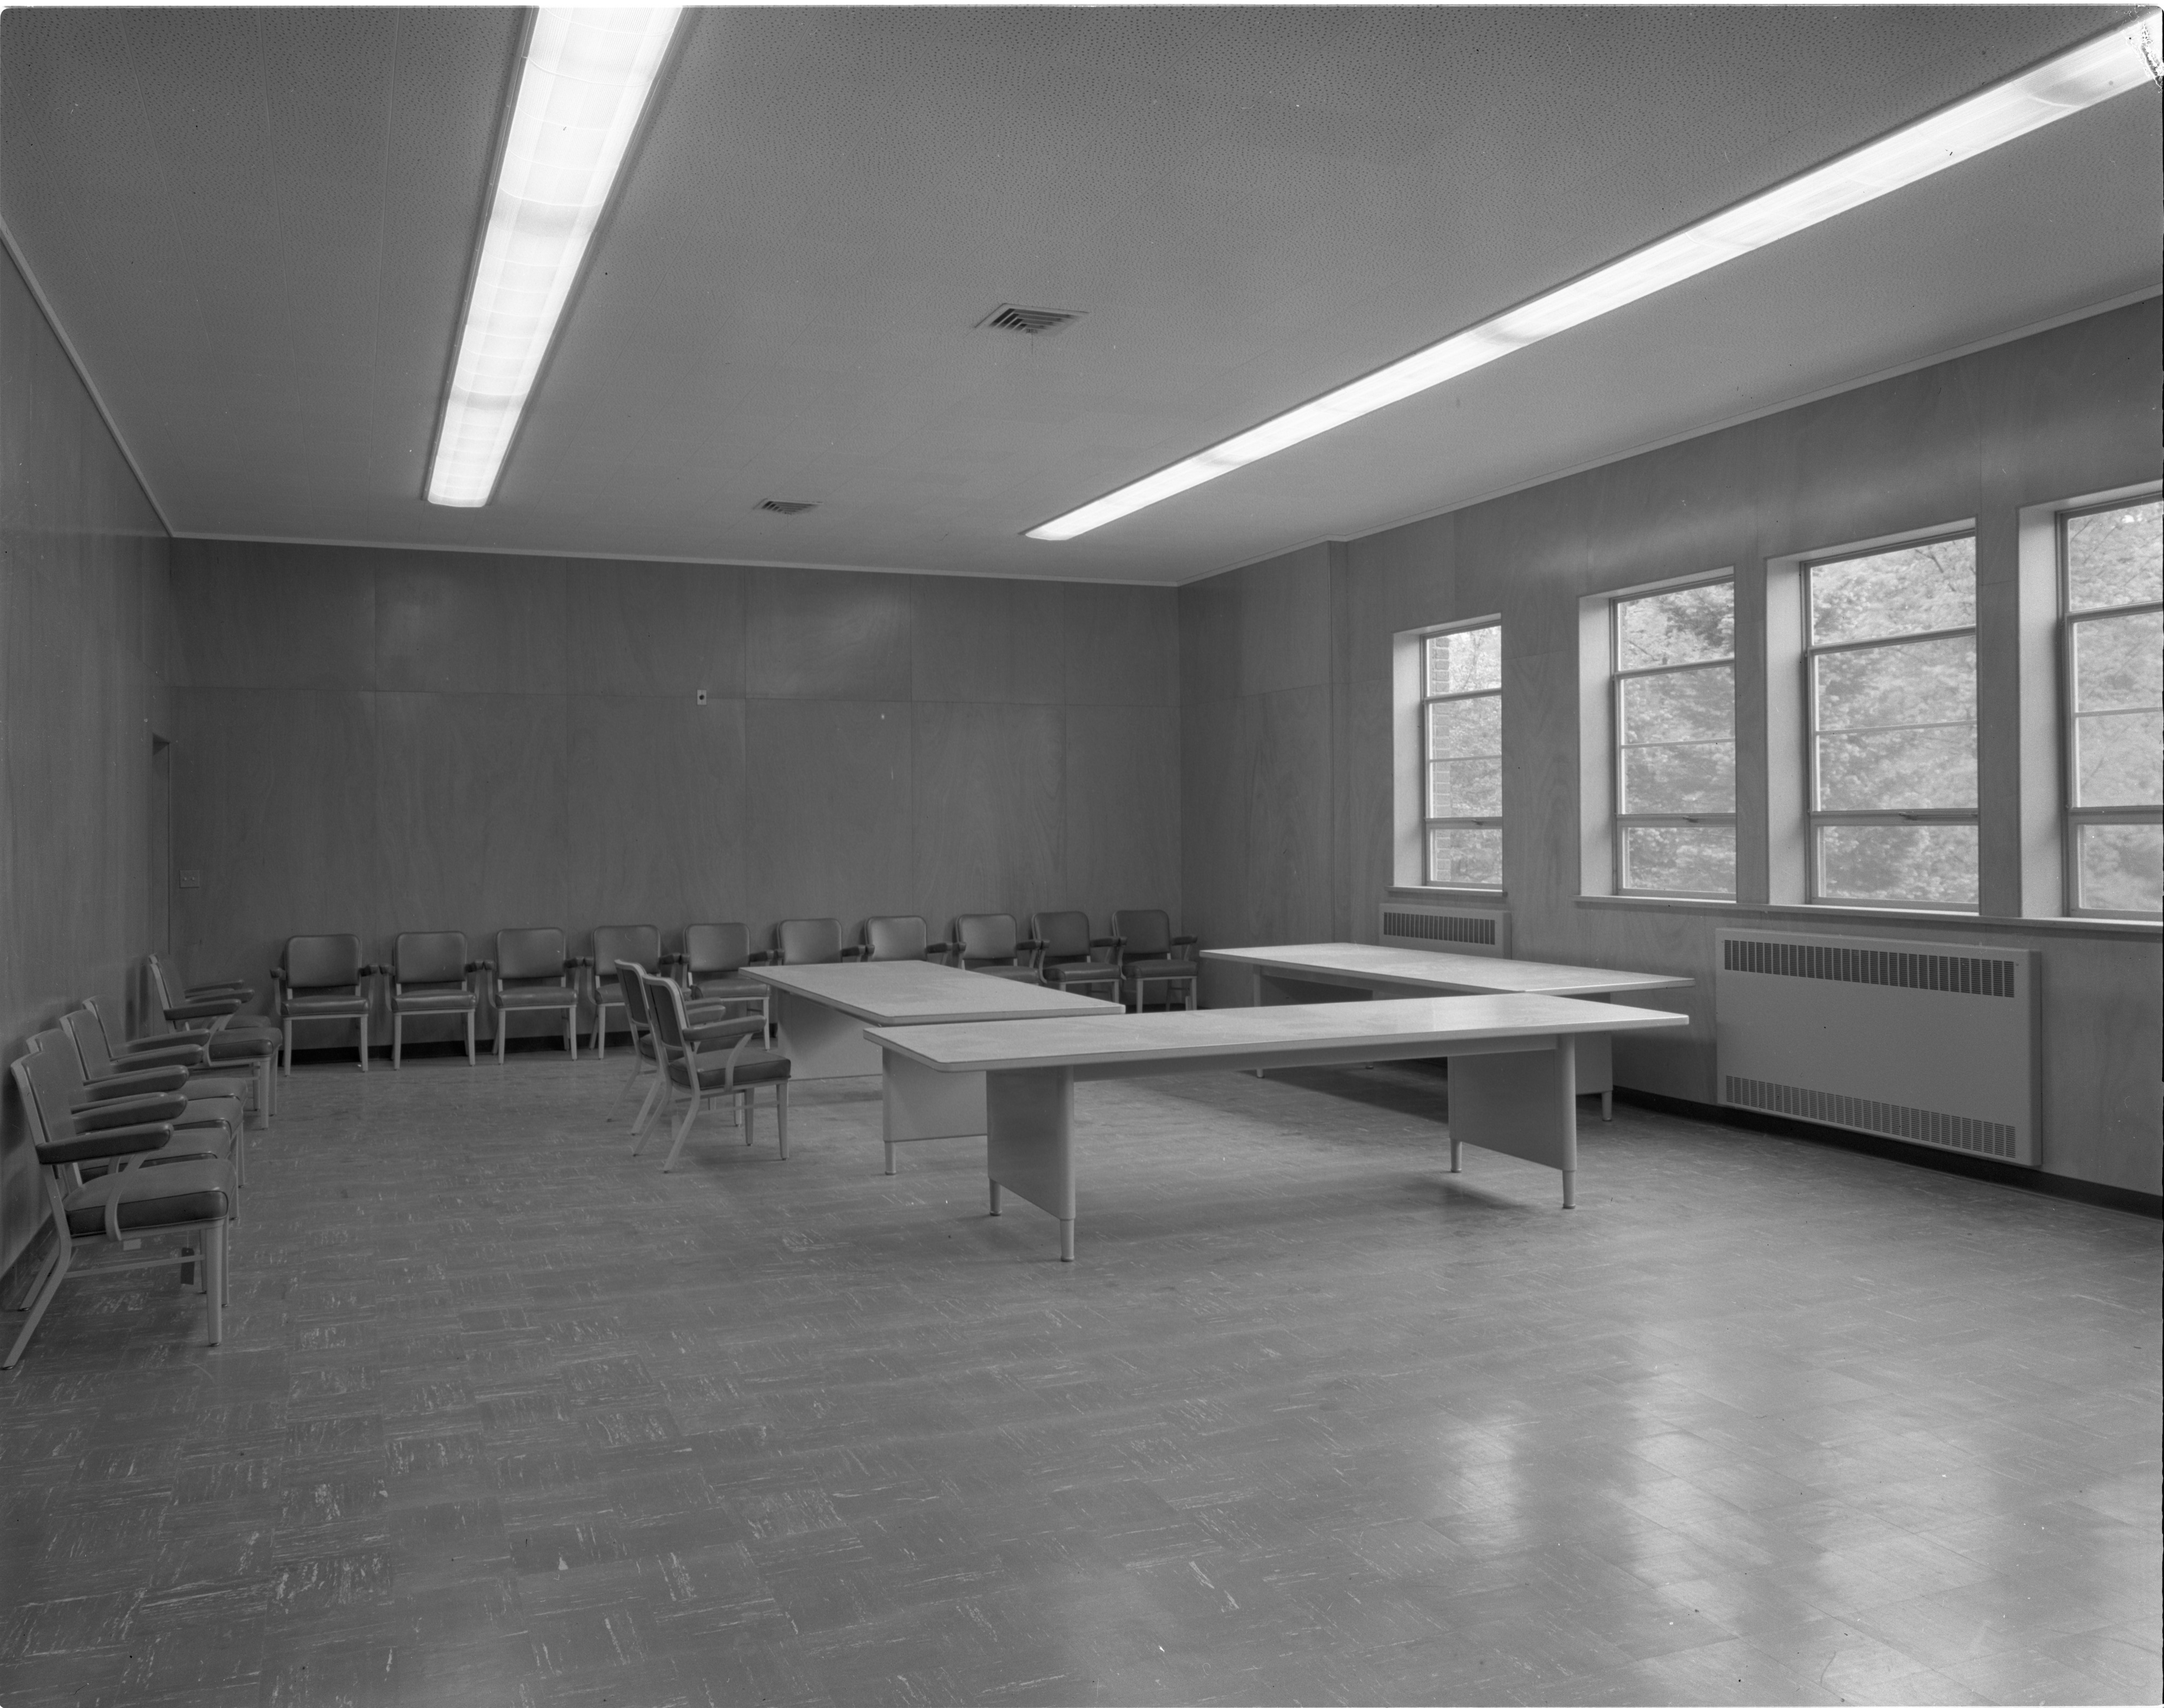 Ann Arbor Public Schools Administration Building - Board Meeting Room, May 1957 image